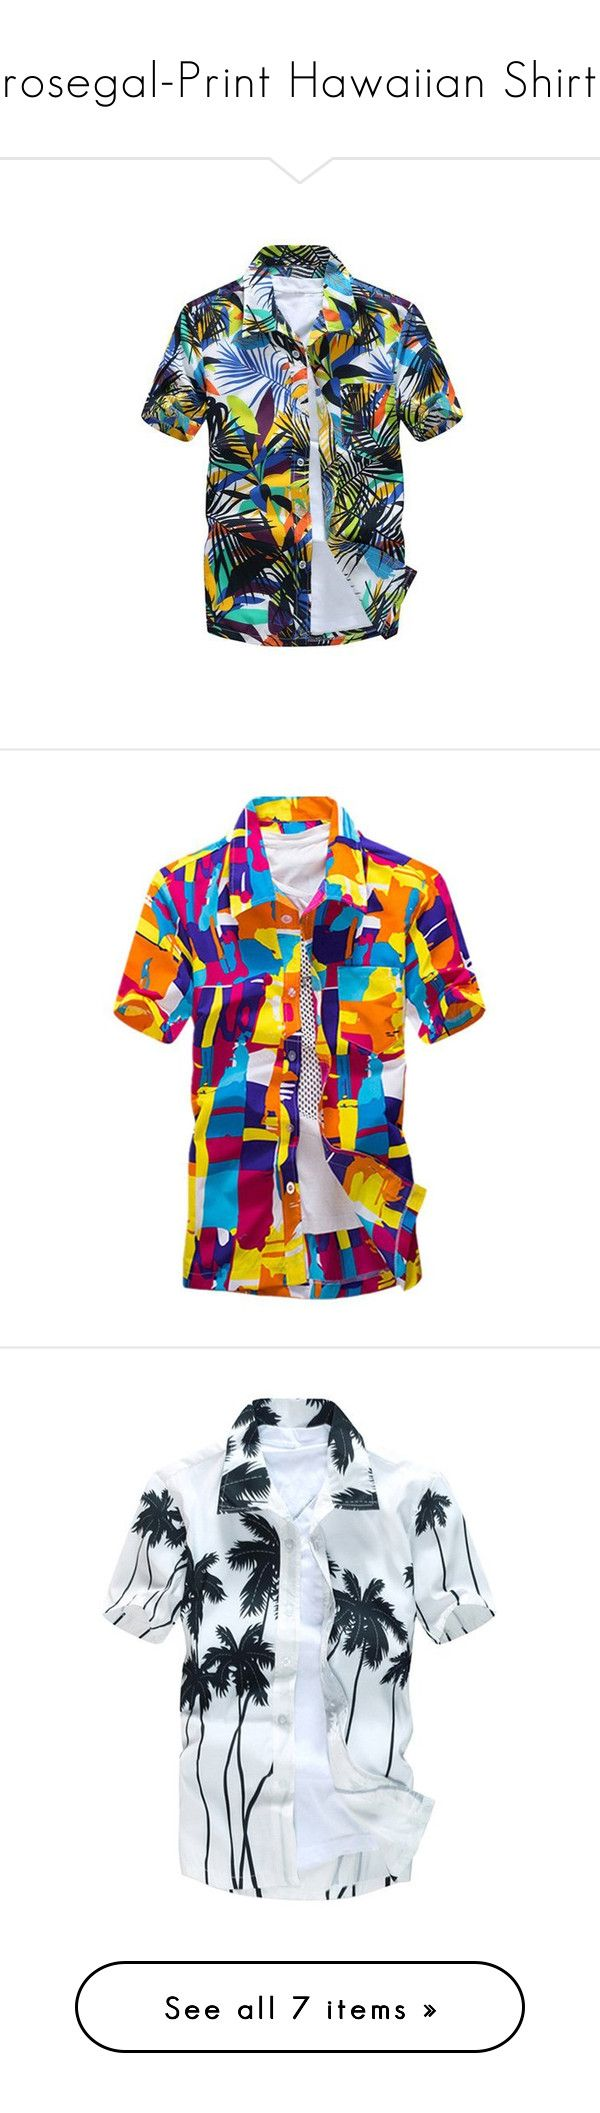 """rosegal-Print Hawaiian Shirt"" by fshionme ❤ liked on Polyvore featuring men's fashion, men's clothing, men's shirts, men's casual shirts, men's hawaiian print shirts, mens hawaiian shirts, mens abstract shirts, mens color block shirt, mens palm tree shirt and mens casual short sleeve shirts"